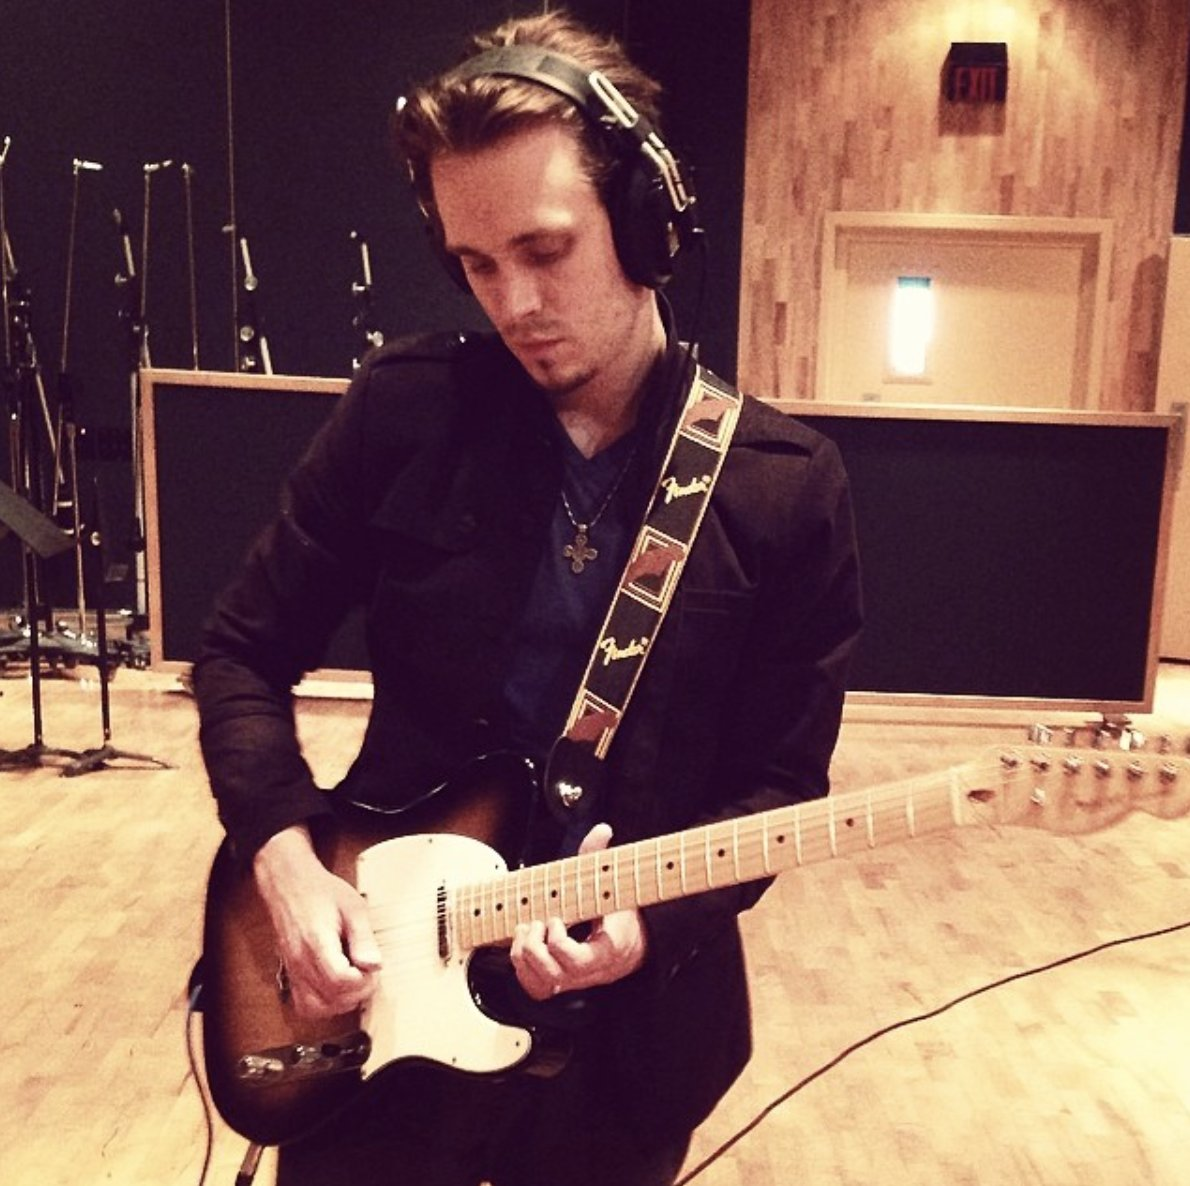 Throwback, in the studio making Young World's Riot. This album has been years in the making, and we've loved every minute of it.   Listen to Everything Is Possible, Cinematic and more on the music platform you love. https://t.co/nnan3kV6V7 . #JonathanJackson #Enation https://t.co/UKDQHi3uLK